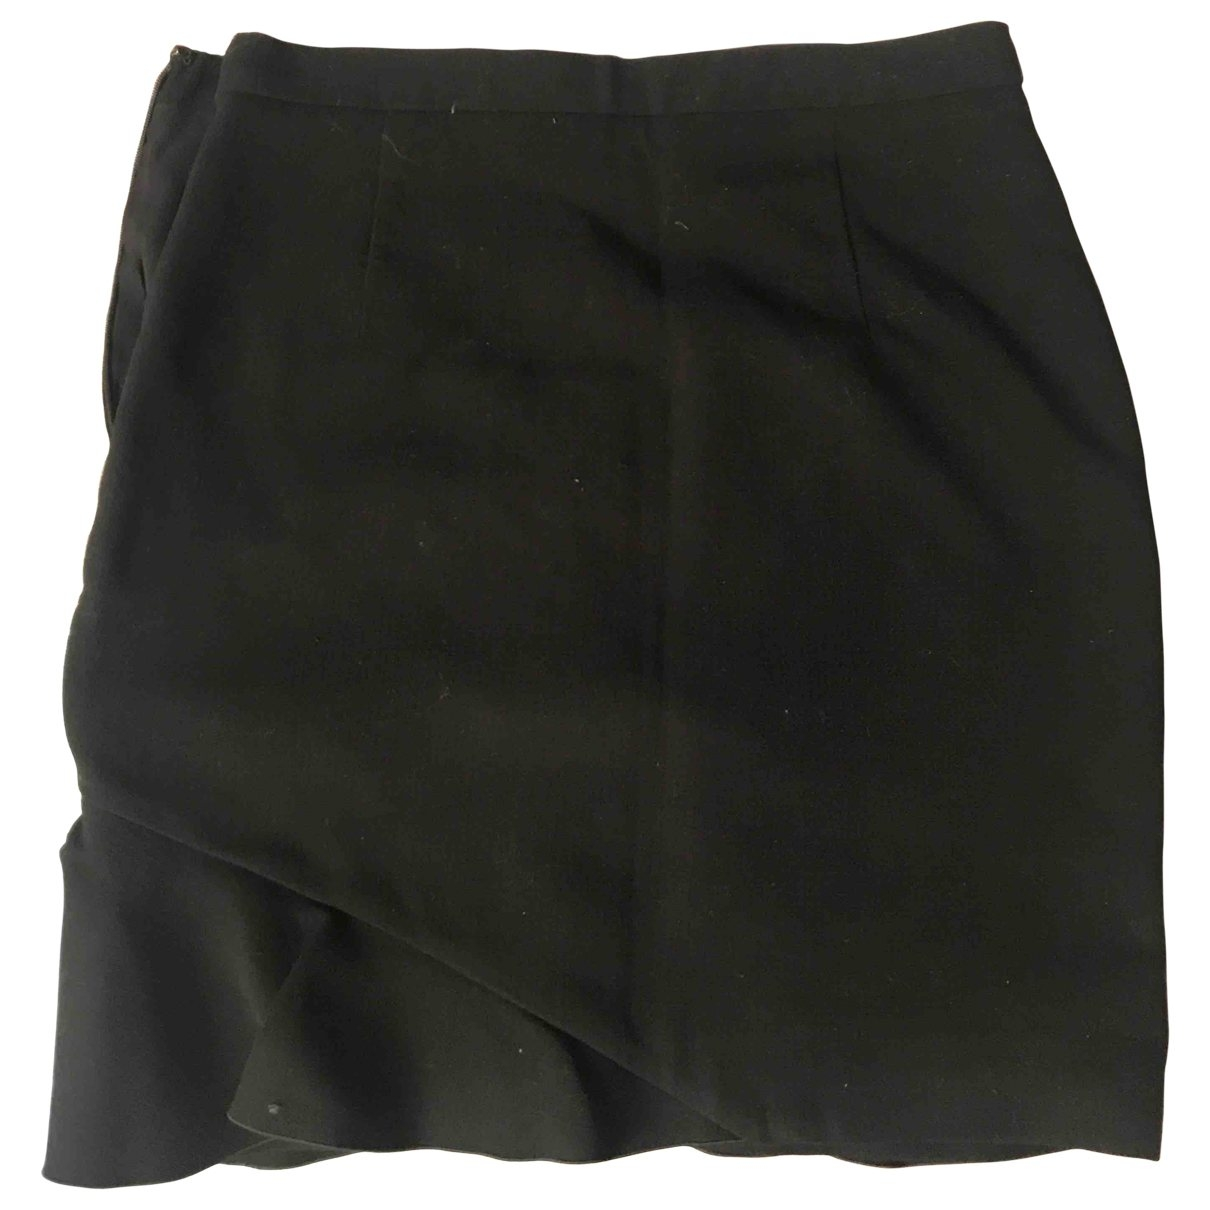 Emilio Pucci \N Black Wool skirt for Women 34 FR